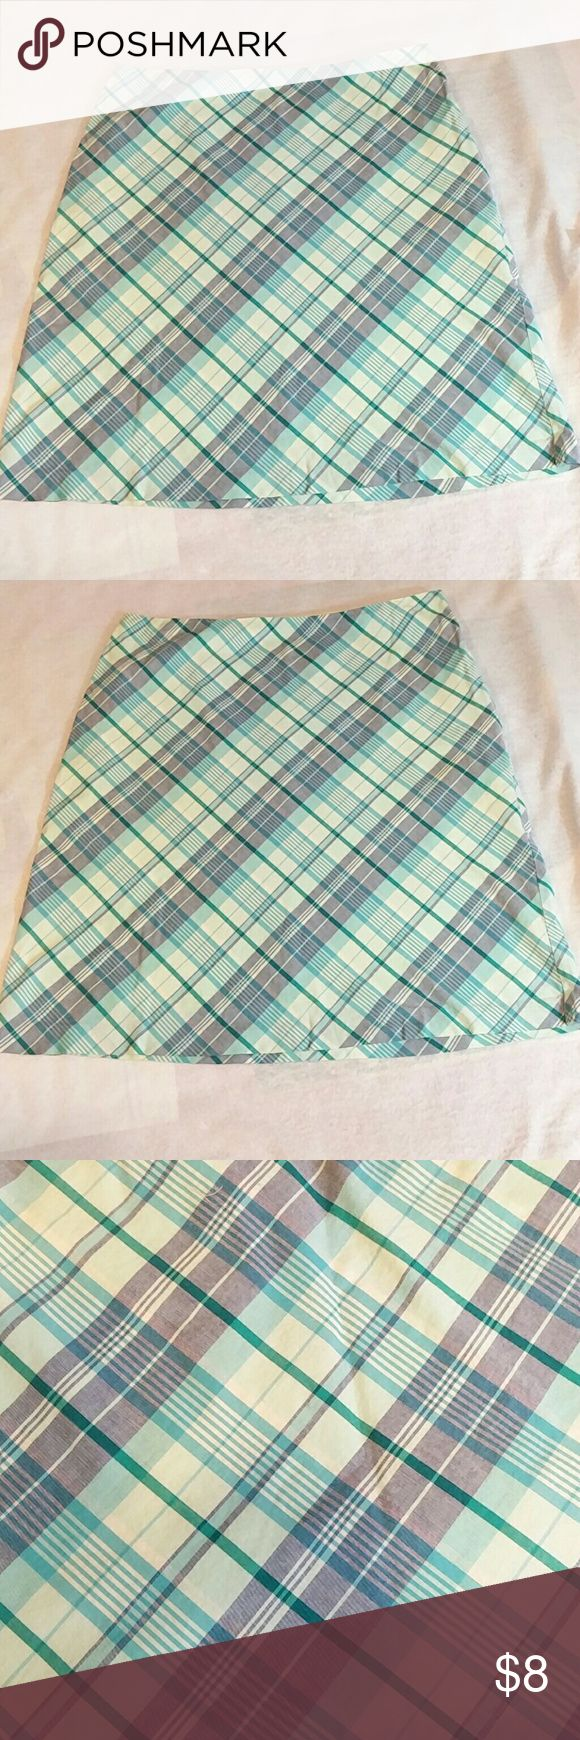 """American Eagle Outfitters 100% Cotton Skirt 2 Looking at an American Eagle Outfitters 109% Cotton Skirt, made in Philippines with side Zipper. Length~18.5"""" Waist~28"""" Please look at pictures and ask questions before buying. Thanks for looking. American Eagle Outfitters Skirts"""